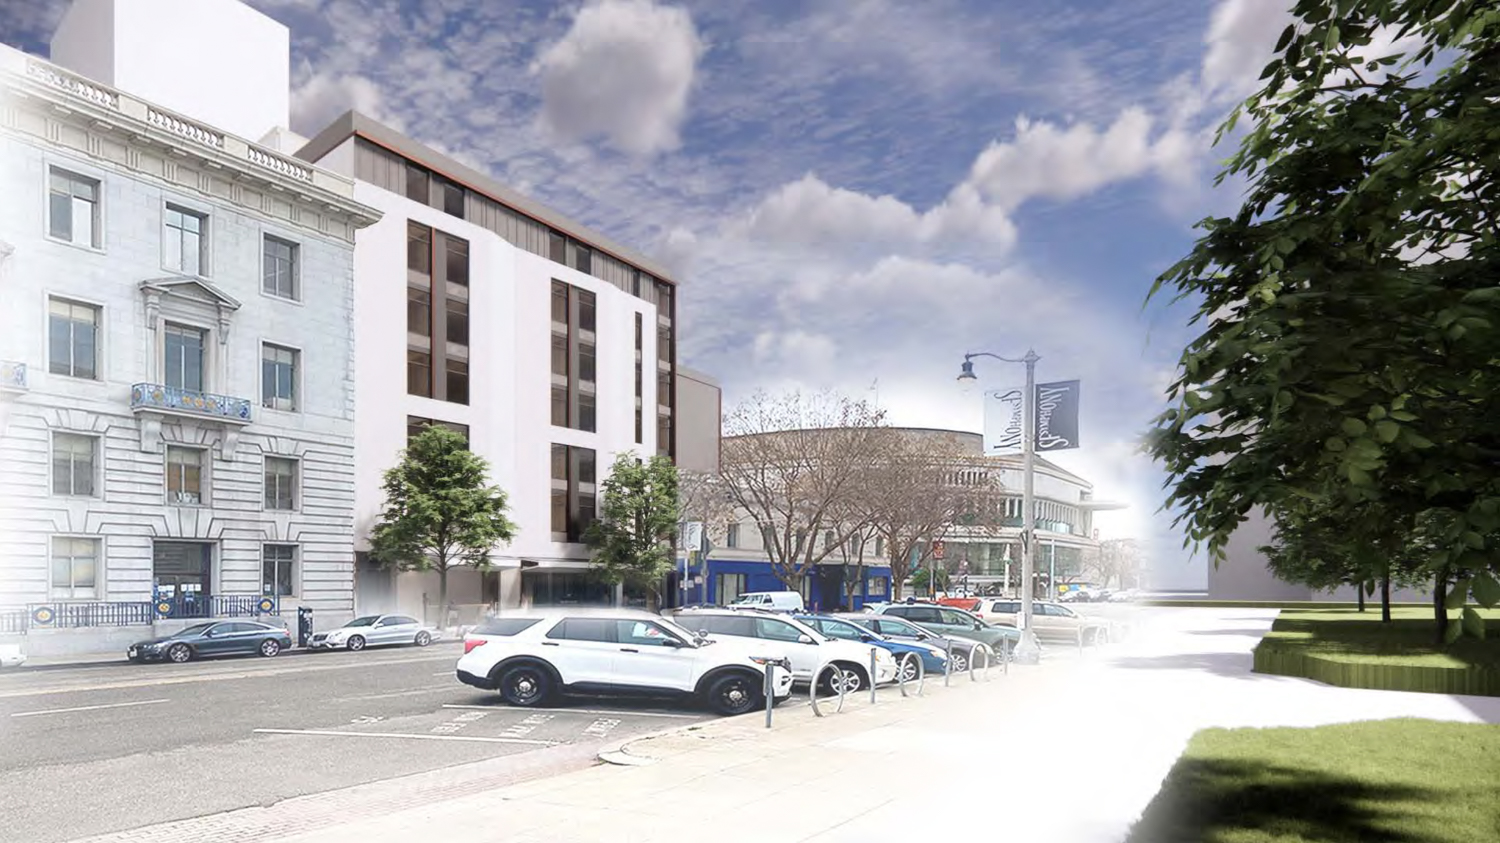 240 Van Ness Avenue with the San Francisco Symphony in background, rendering by WRNS Studios